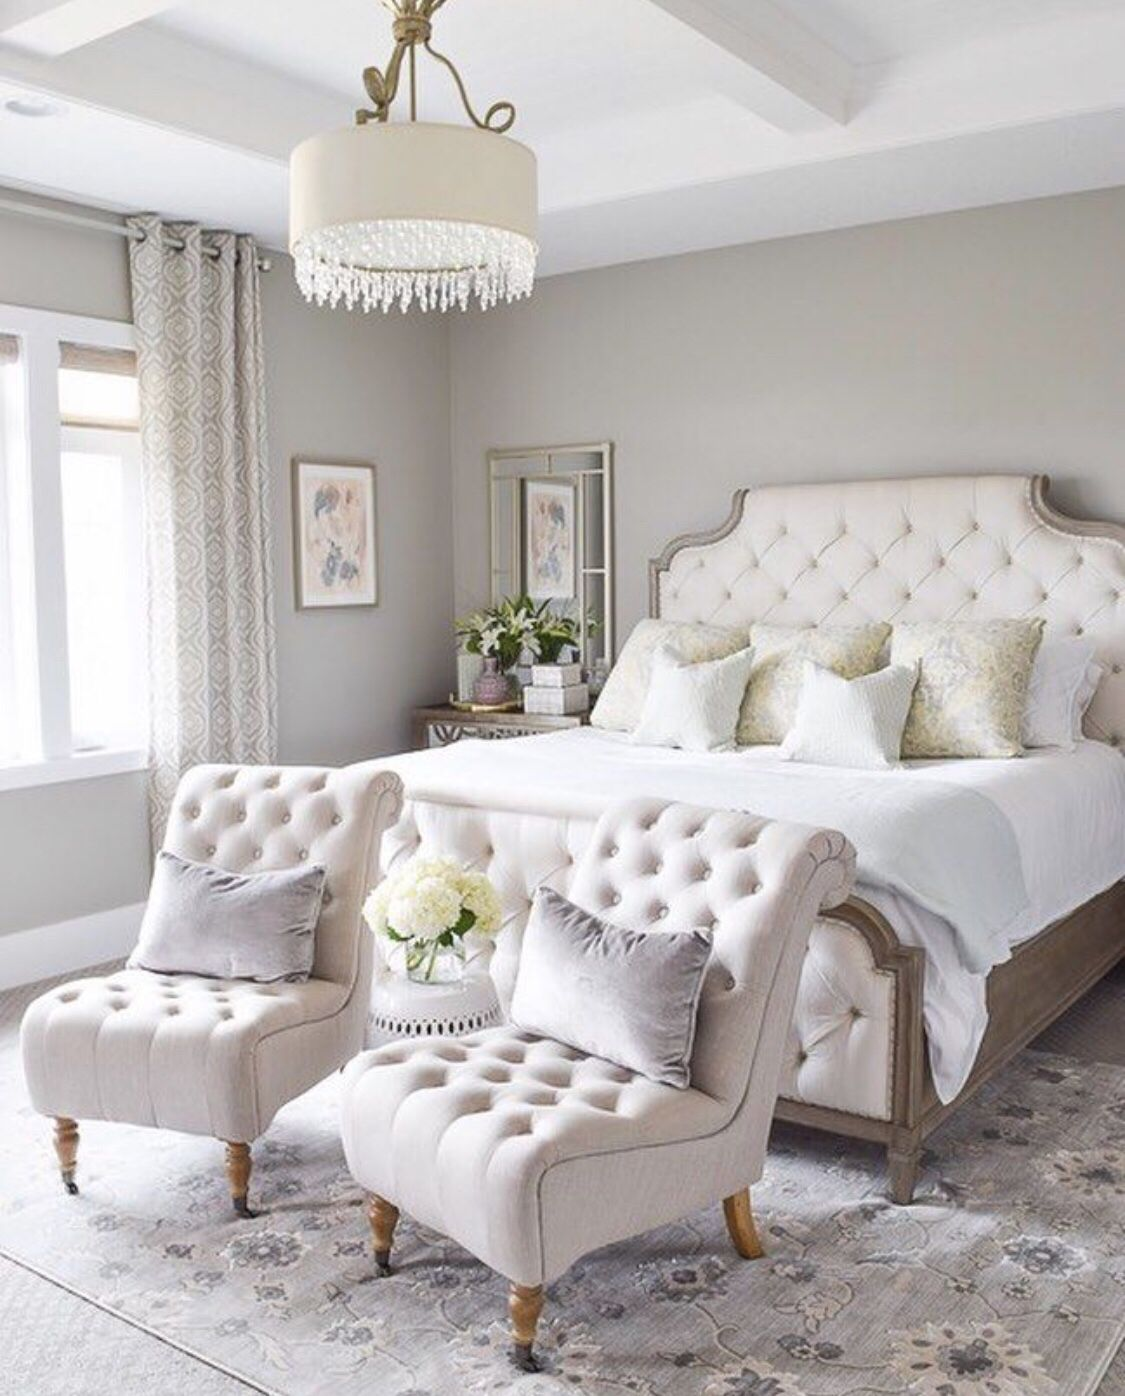 Soft, Feminine And Serene That's What These Bedrooms Are